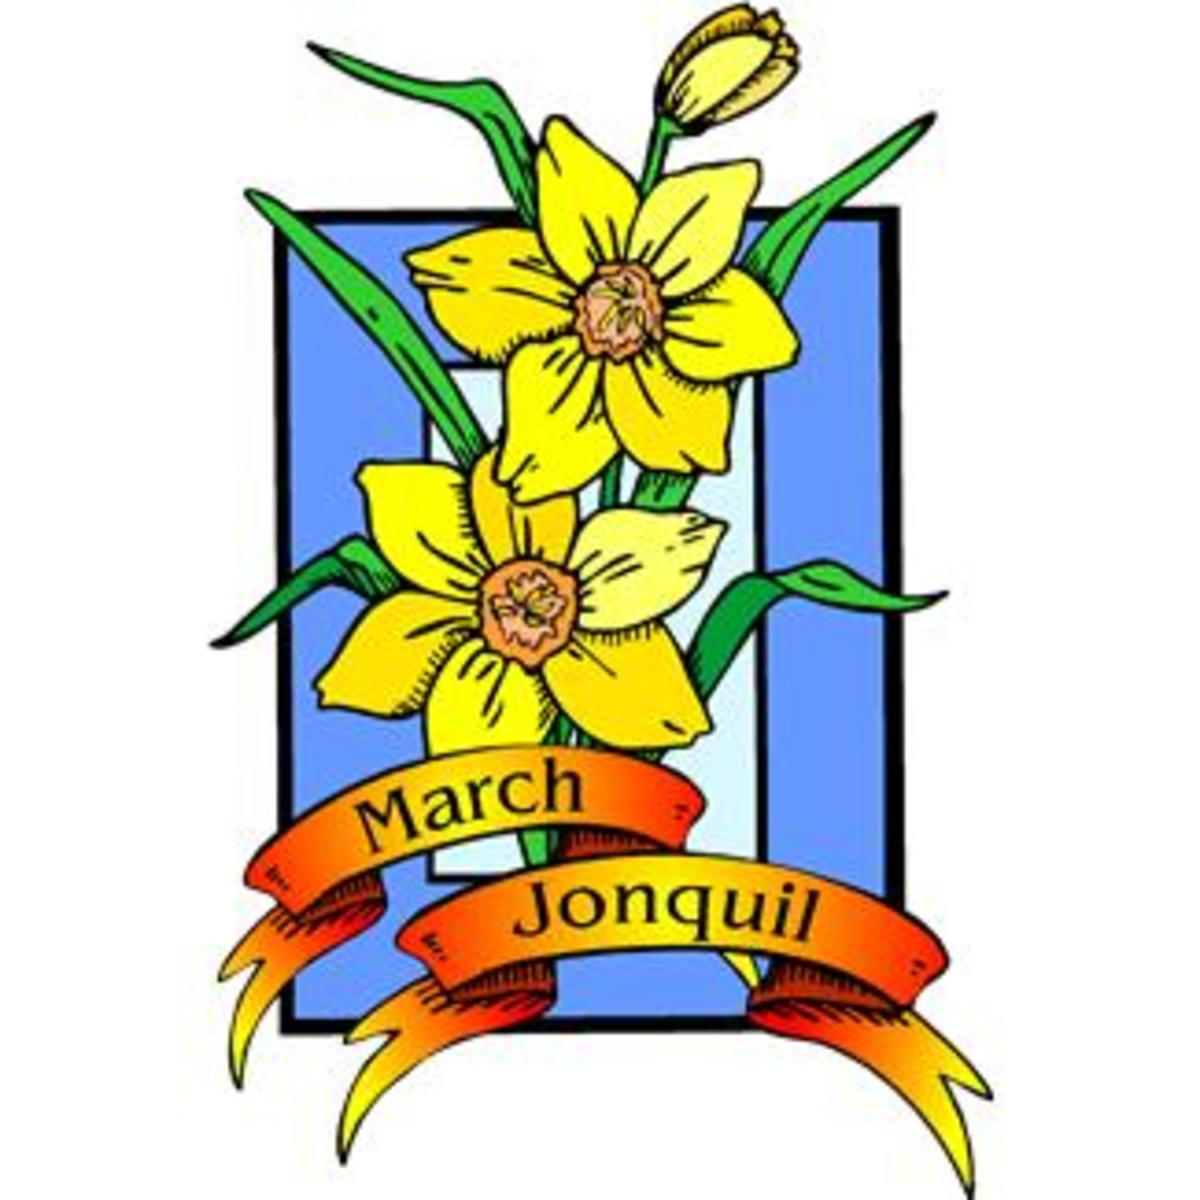 March Jonquils